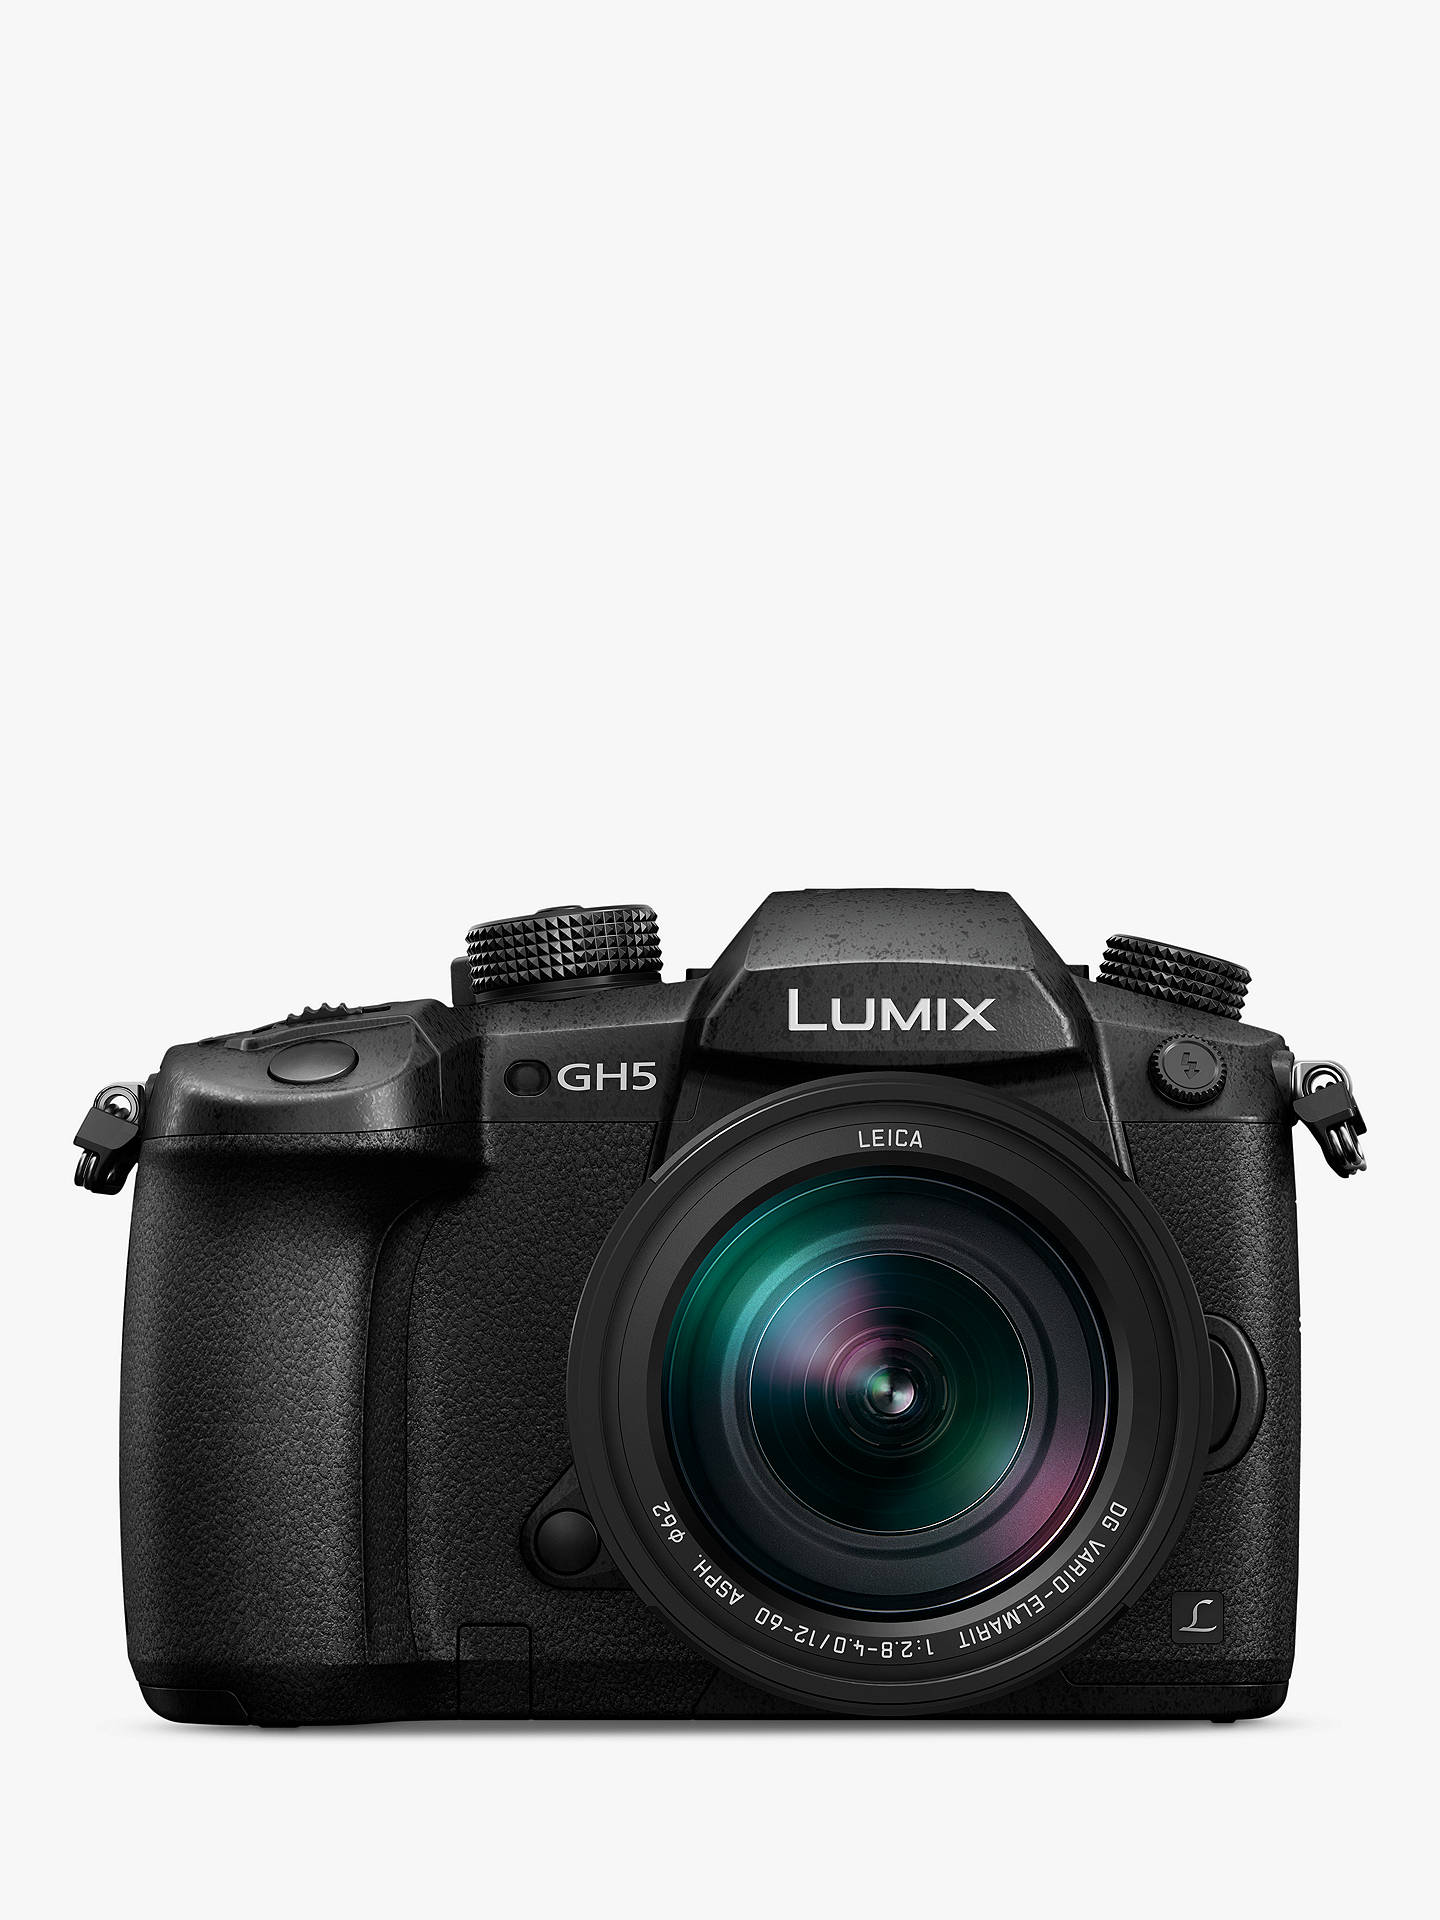 """Panasonic Lumix DC-GH5 Compact System Camera with Leica 12-60mm O I S   Interchangeable Lens, 4K UHD , 20 3MP, Wi-Fi, OLED Live Viewfinder, 3 2""""  LCD"""